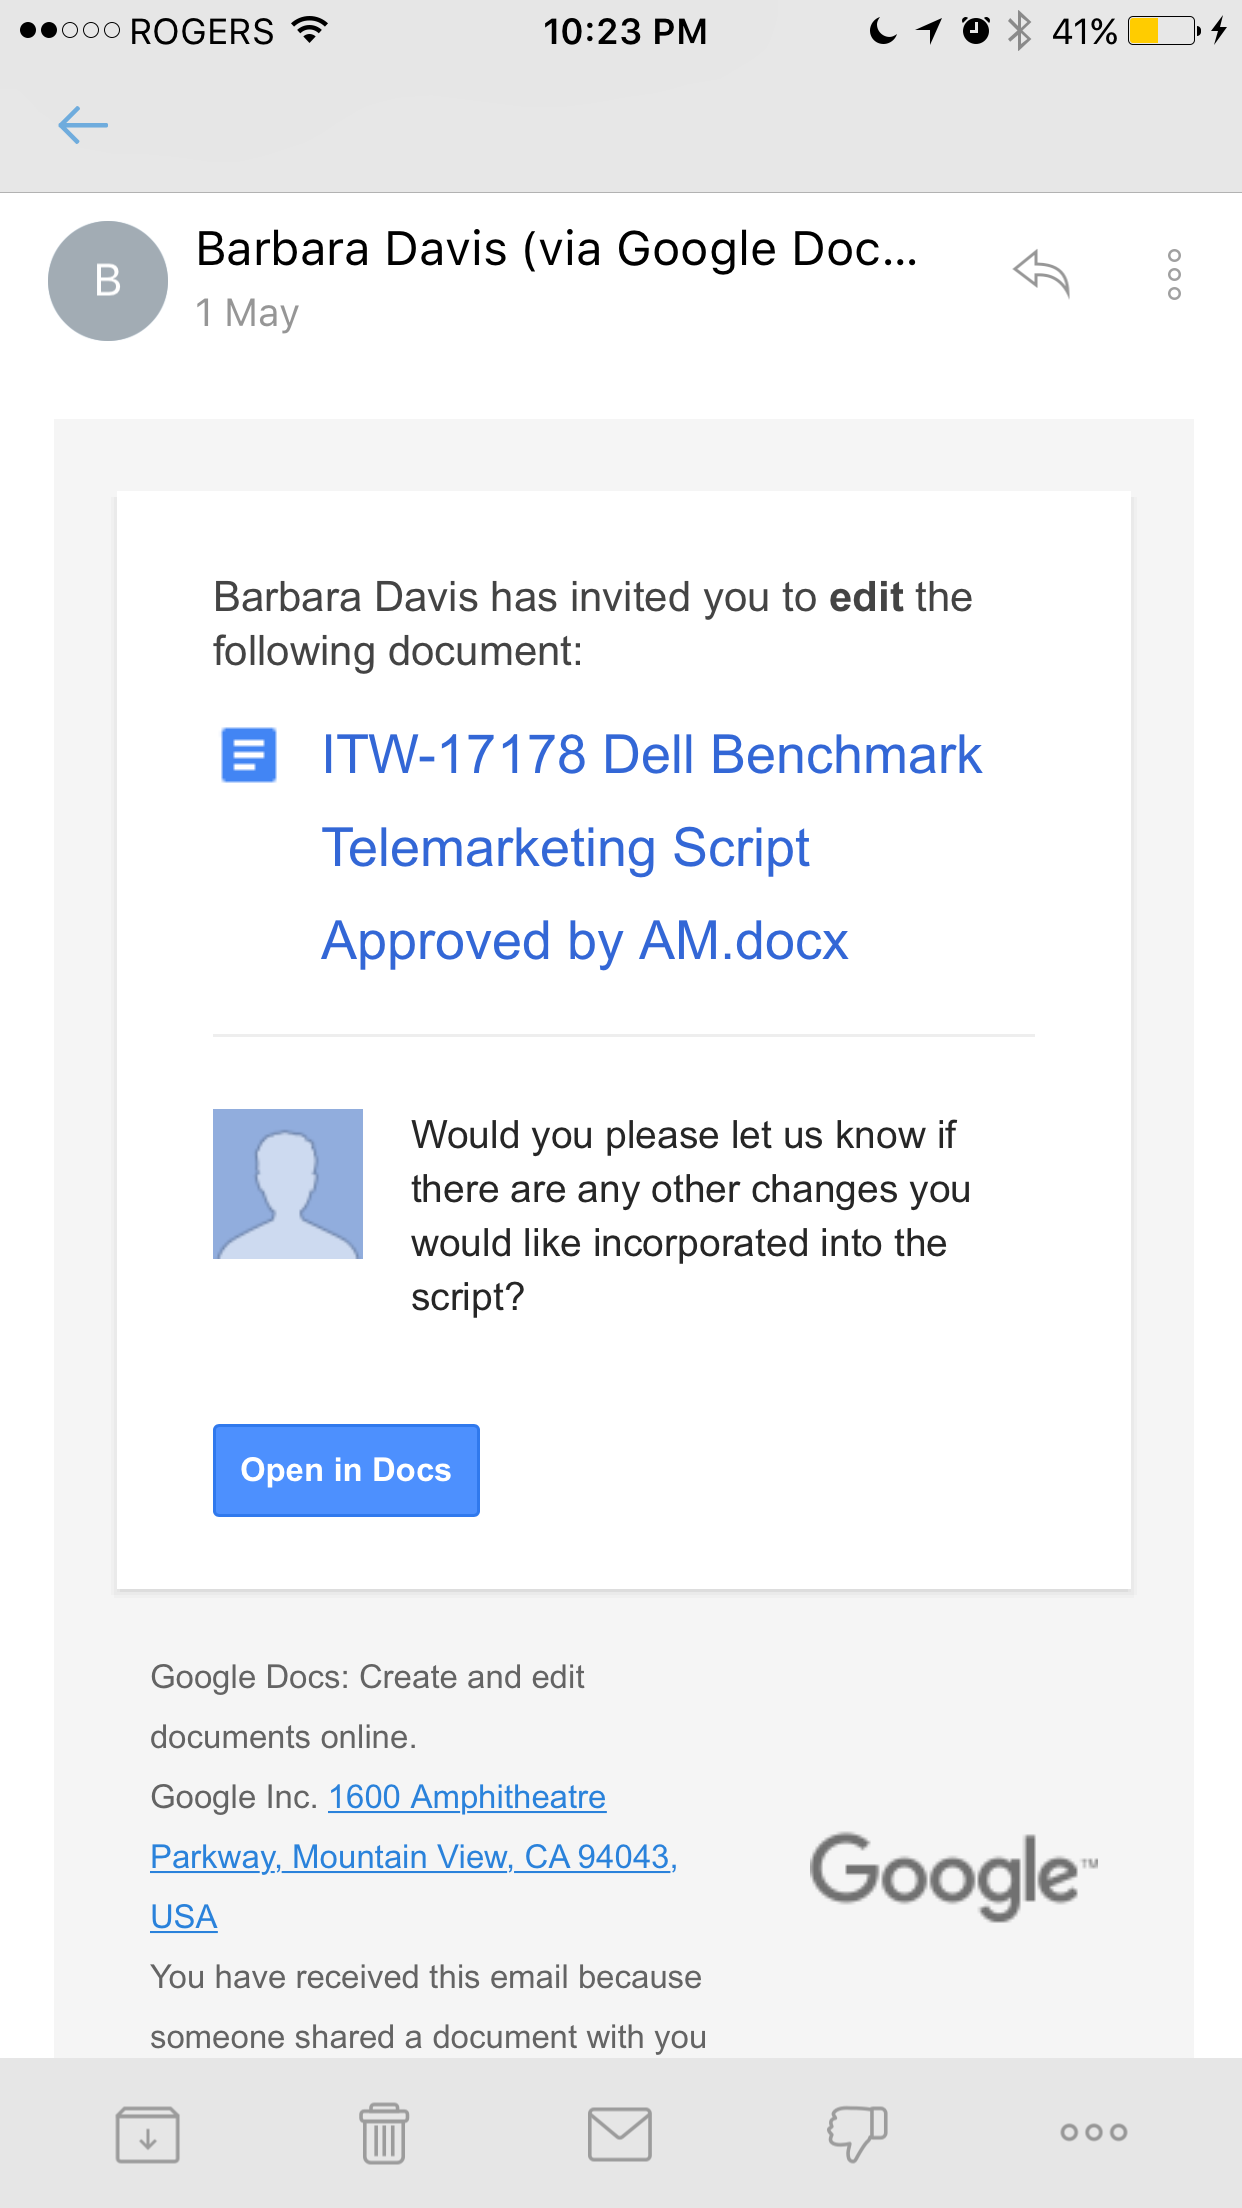 Invitation - Google Docs phishing scam